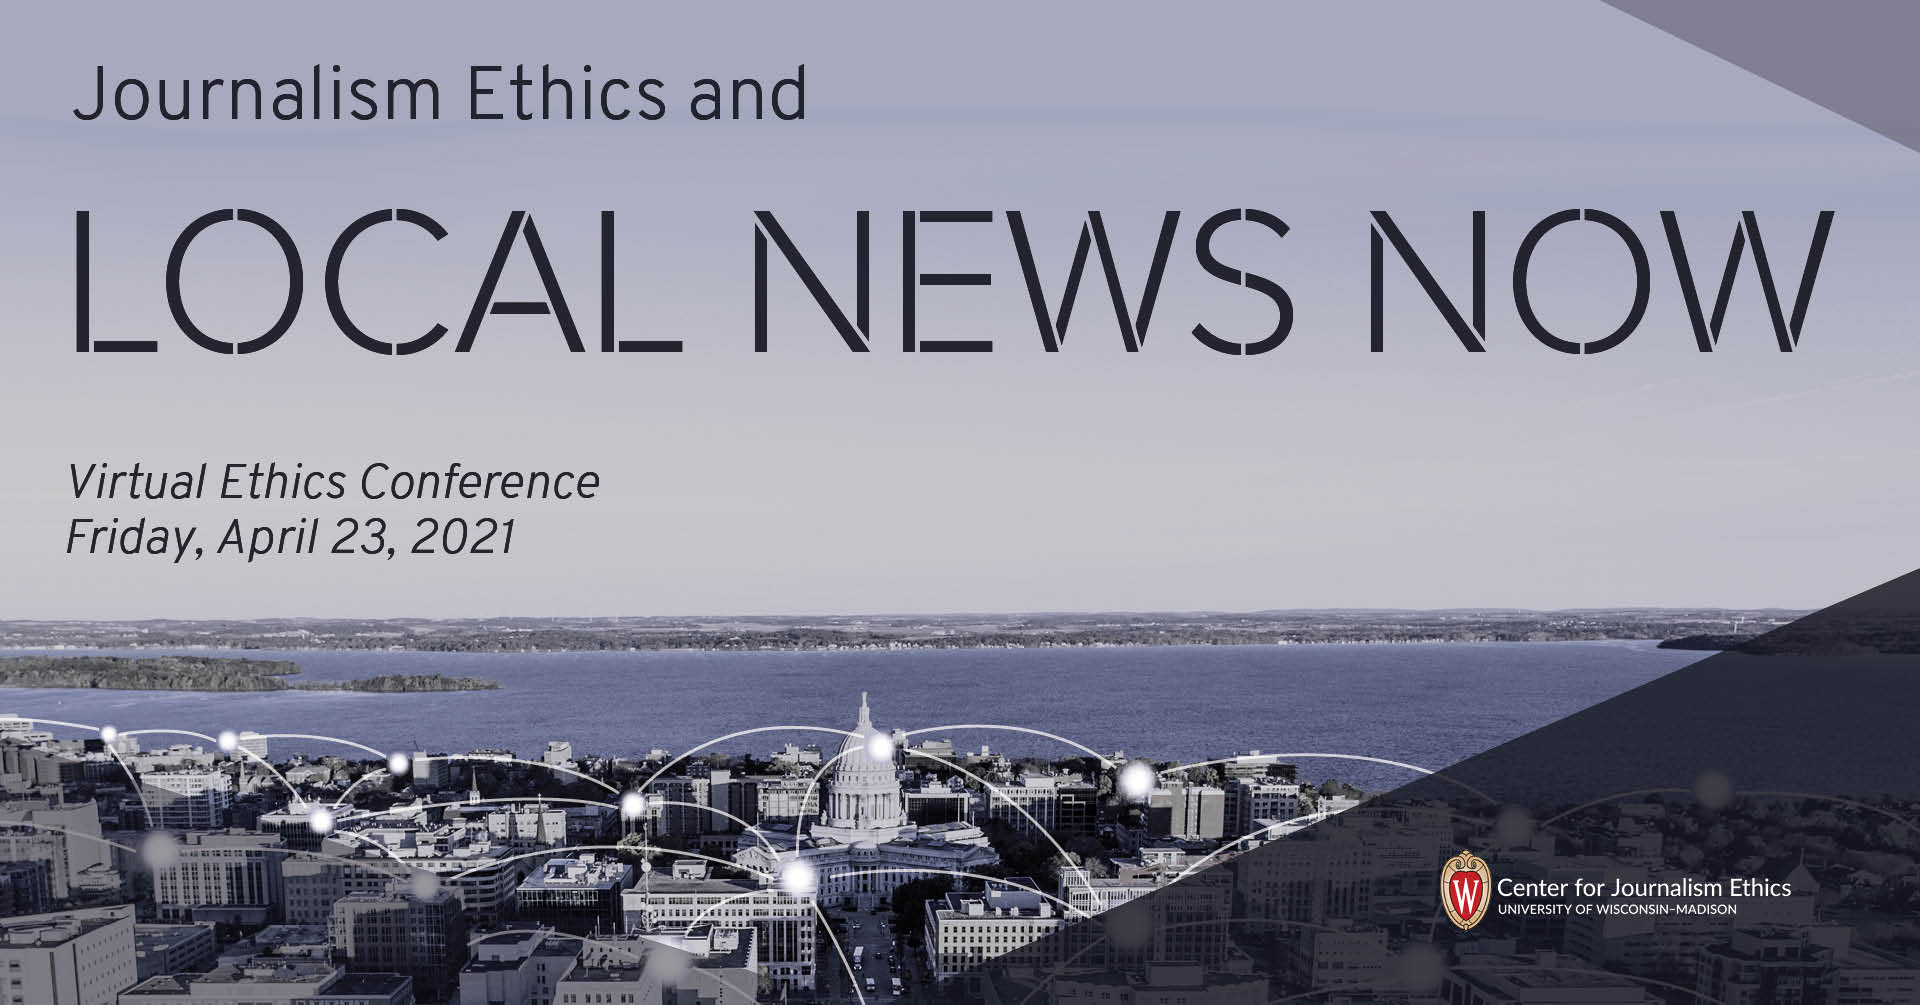 """""""Journalism Ethics and LOCAL NEWS NOW, virtual conference, Friday, April 23, 2021"""" floating over image of Madison, Wisconsin with Lake Mendota in the background."""